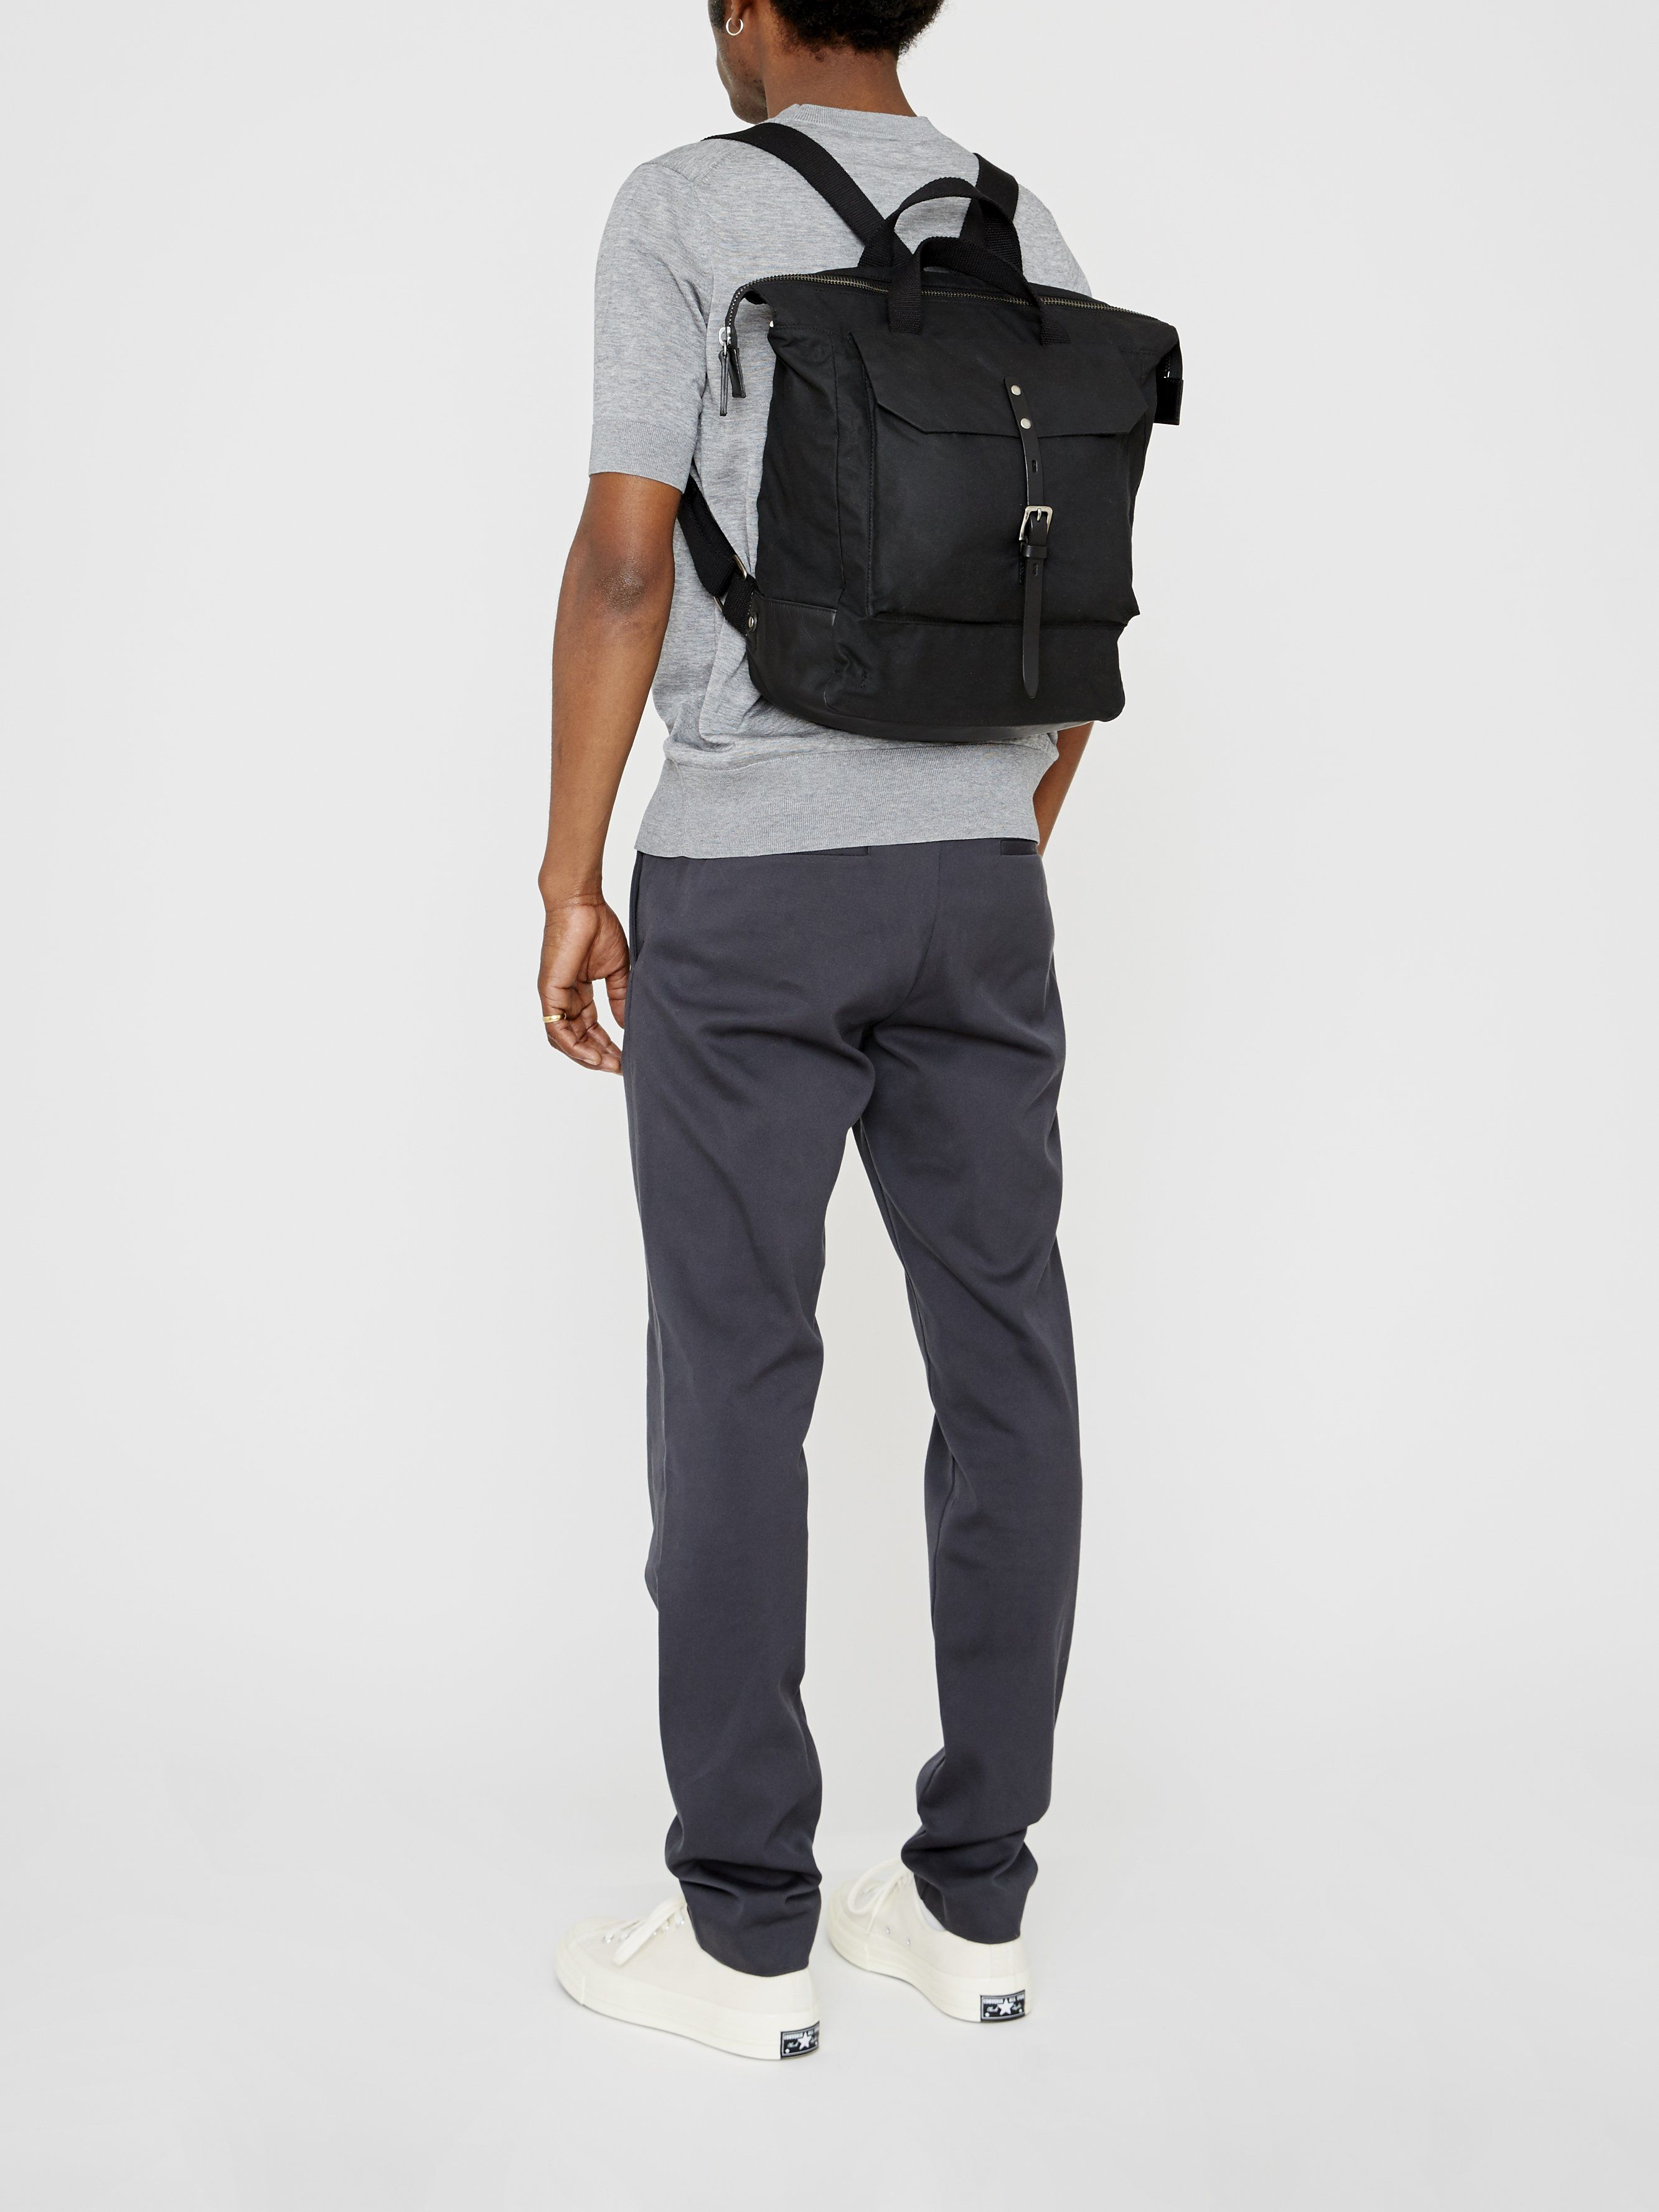 Frances Waxed Cotton Rucksack in Olive